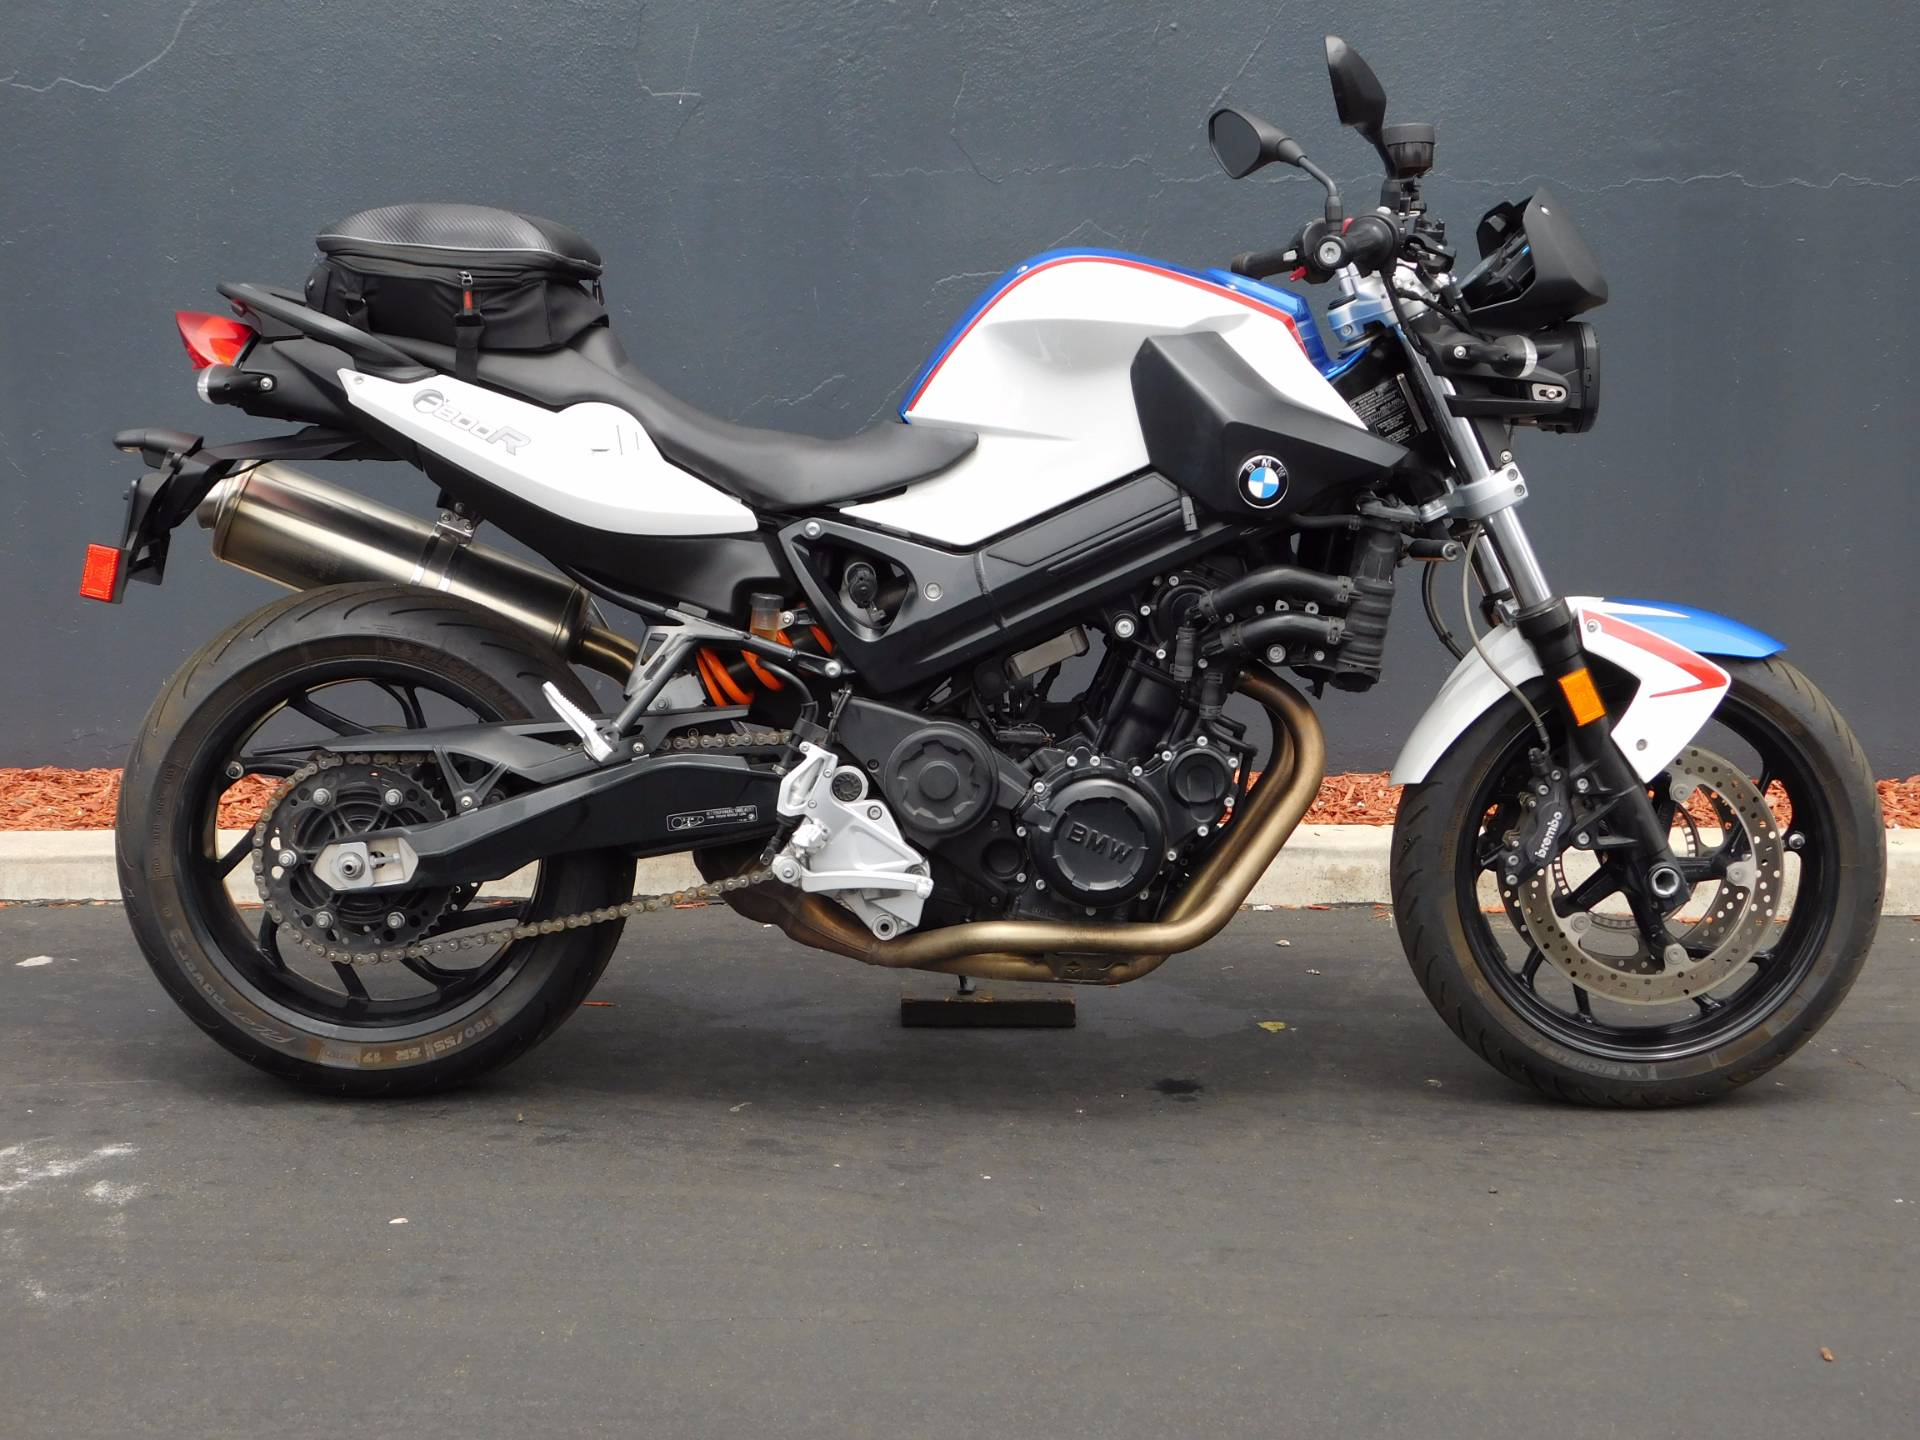 used 2011 bmw f 800 r motorcycles in chula vista ca. Black Bedroom Furniture Sets. Home Design Ideas